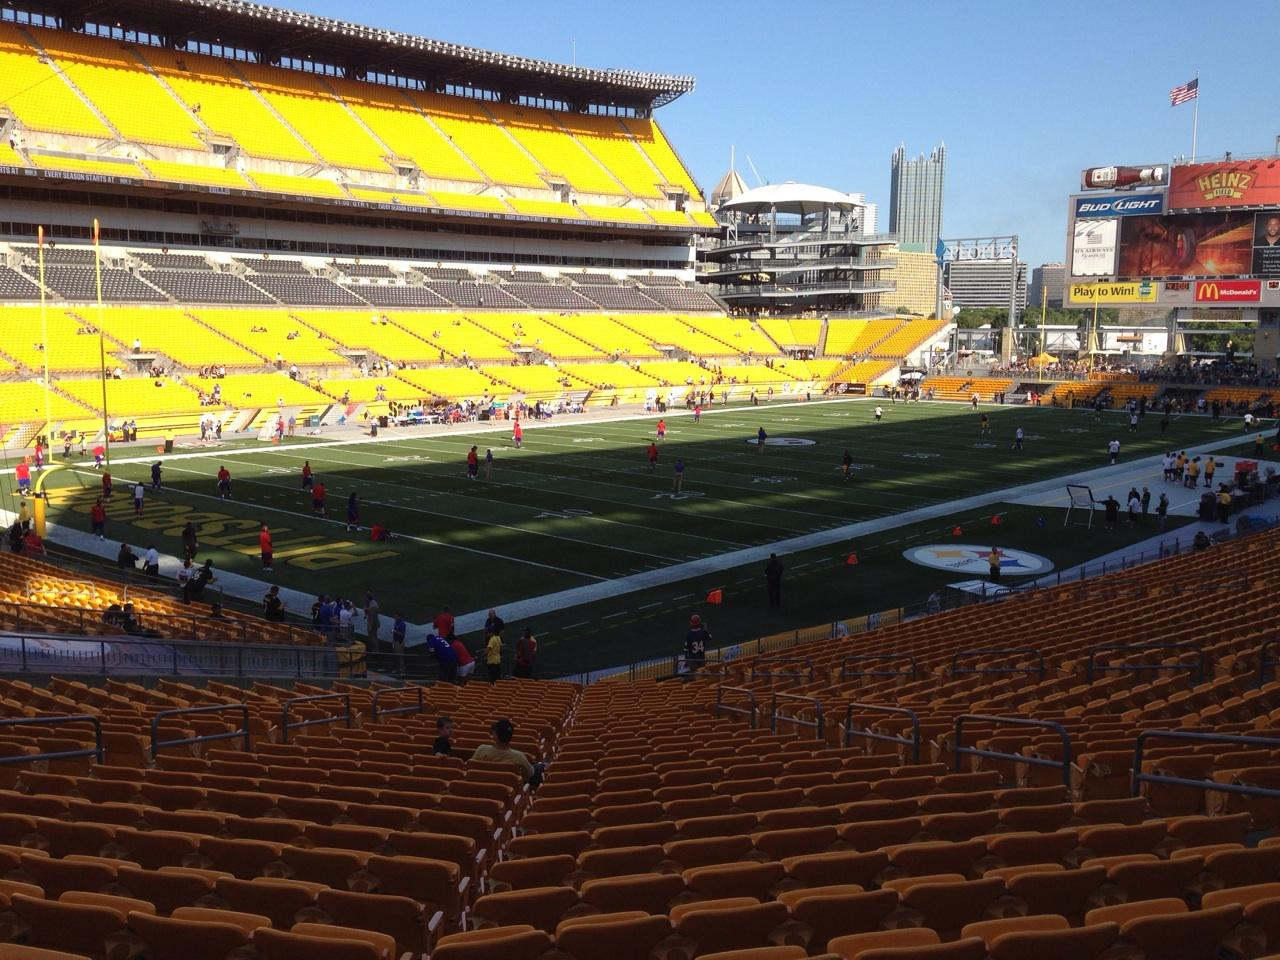 View From Section 128, Row X, Seat 10